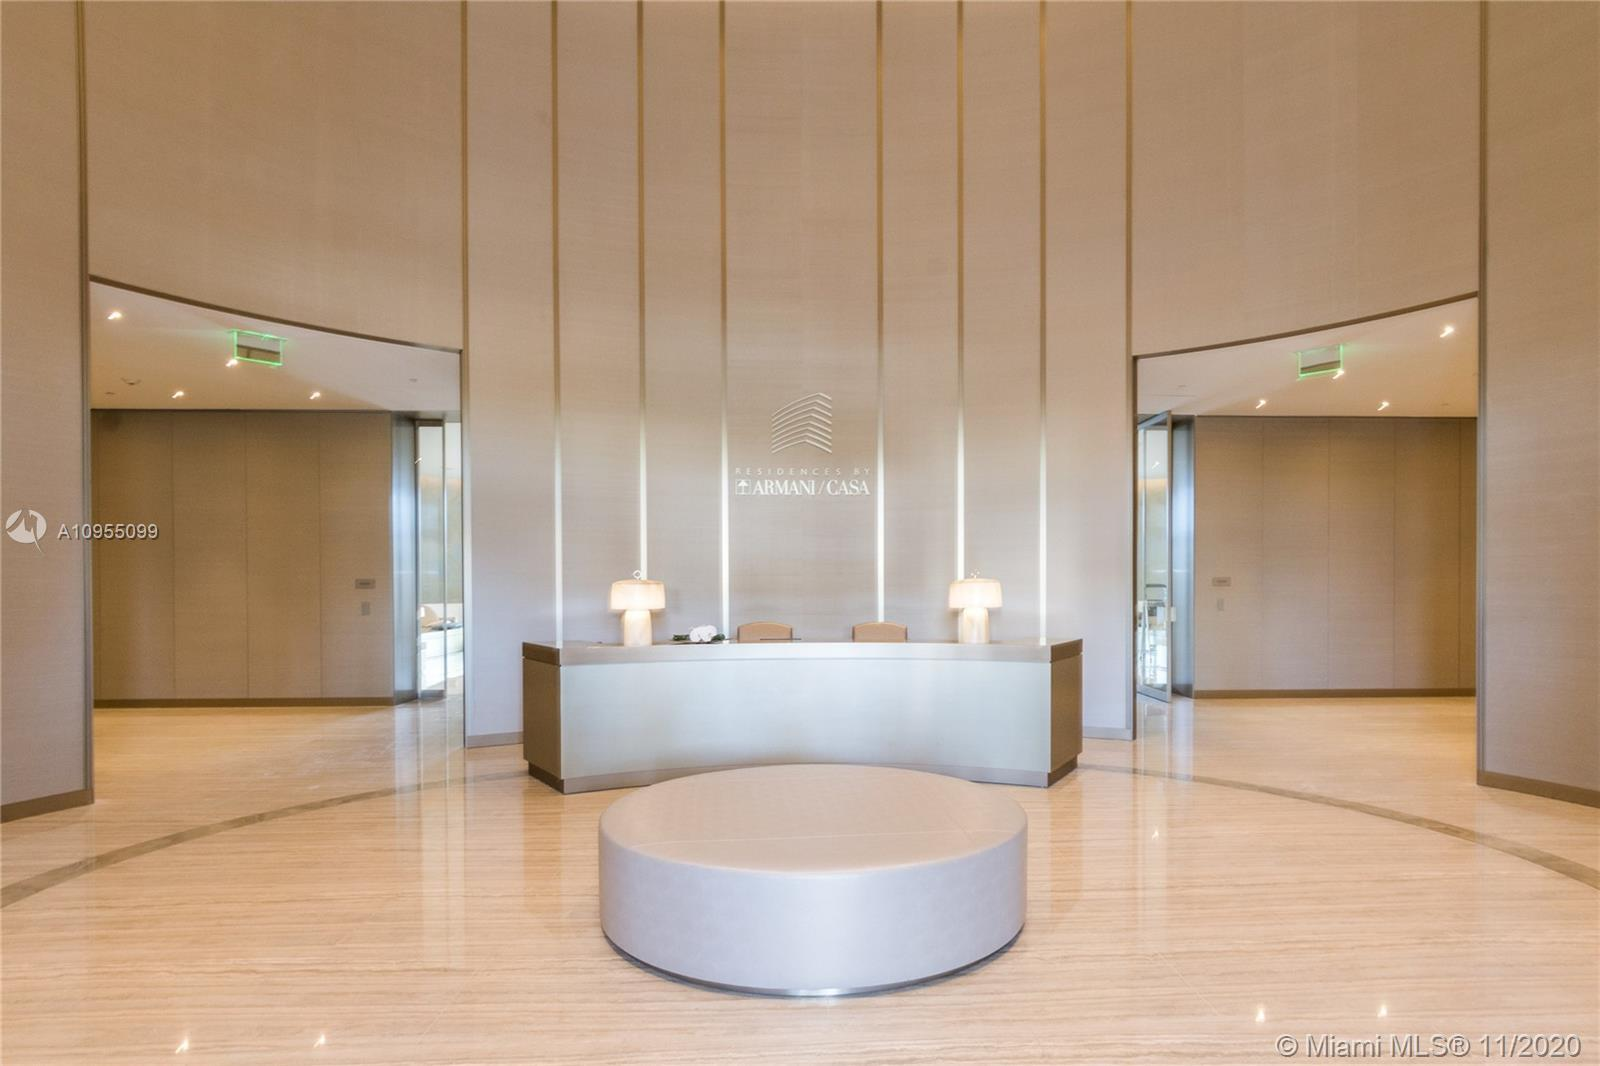 NEW 2020 SUNNY ISLES CONDO - THE RESIDENCES BY ARMANI CASA, 2 BEDROOM & 2 BATHROOMS WITH AMAZING OCE